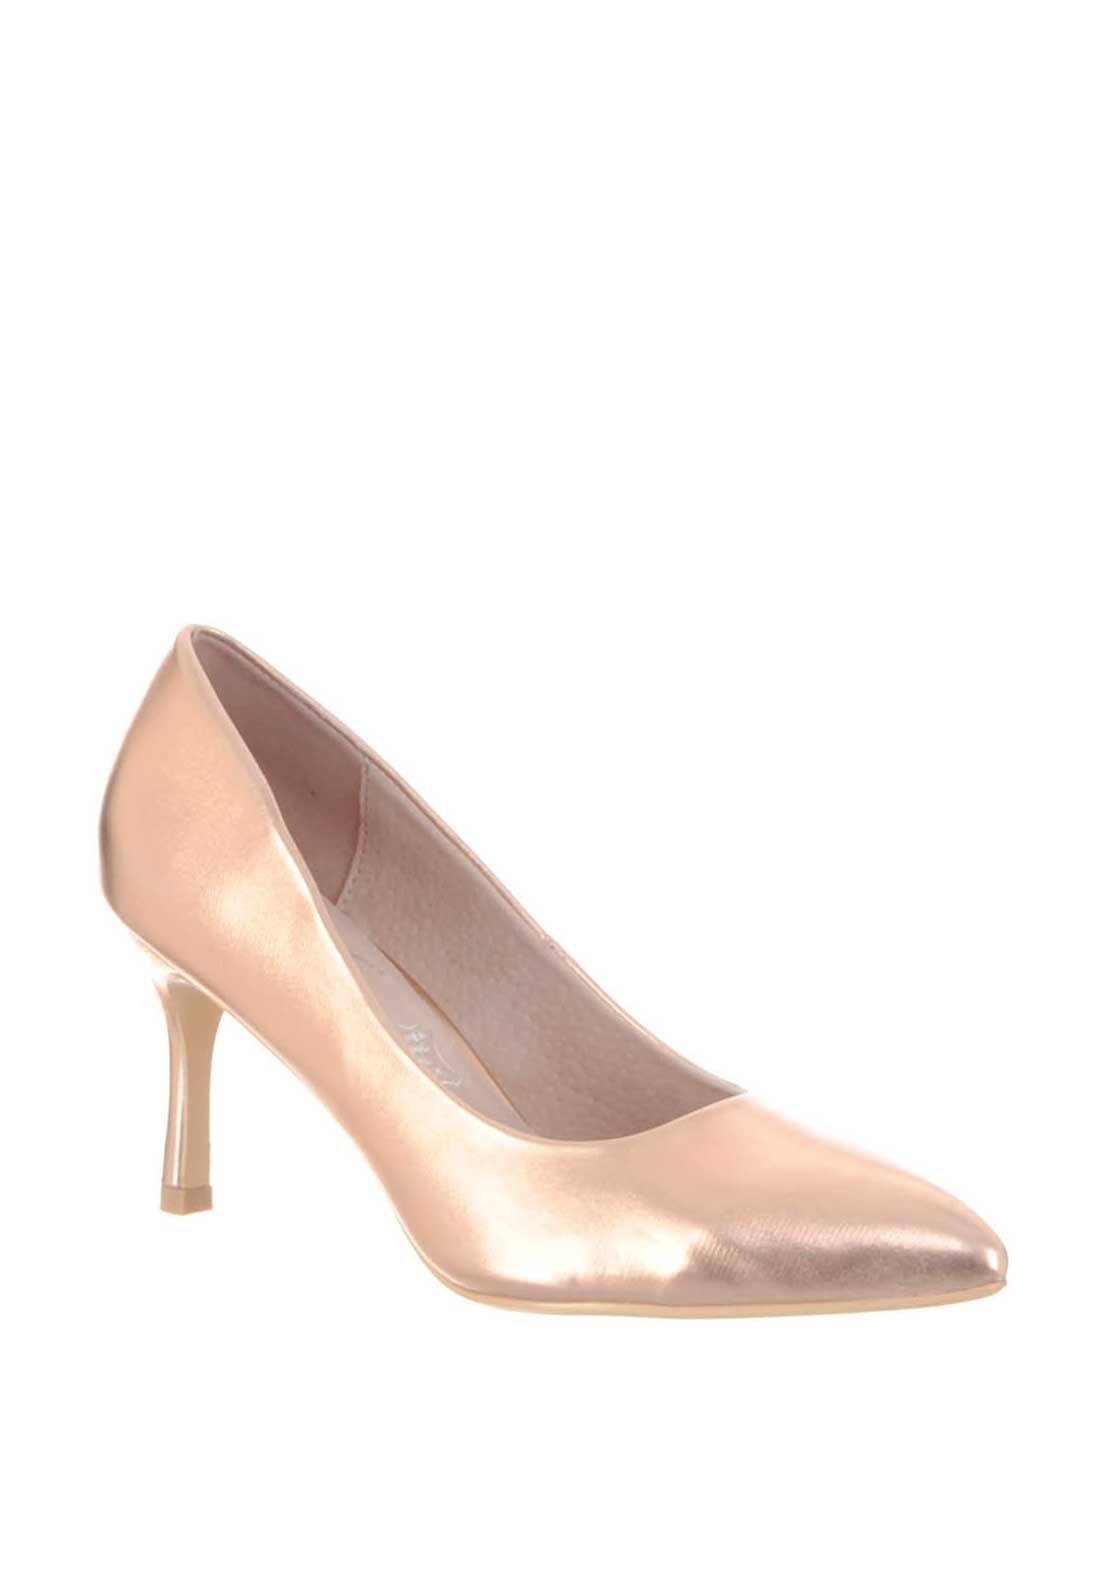 2c5dbe720f7f Lunar Metallic Pointed Toe Low Heeled Shoes